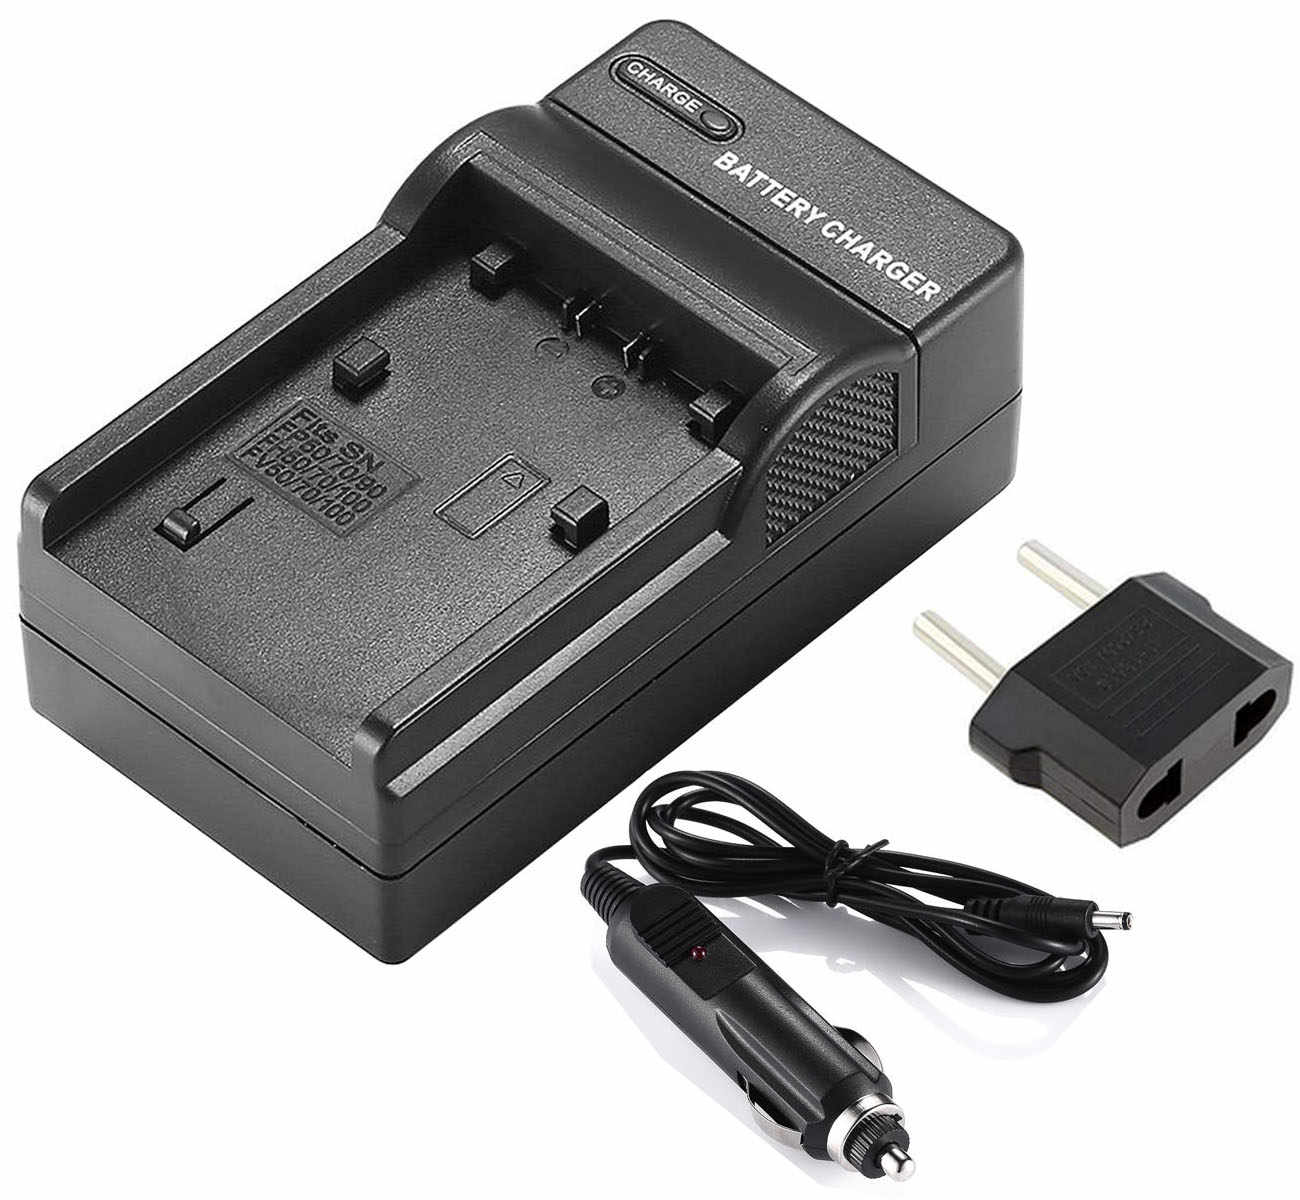 USB Power Adapter Charger for Sony HDR-CX105 HDR-CX115 HDR-CX106 HDR-CX155 Handycam Camcorder HDR-CX116